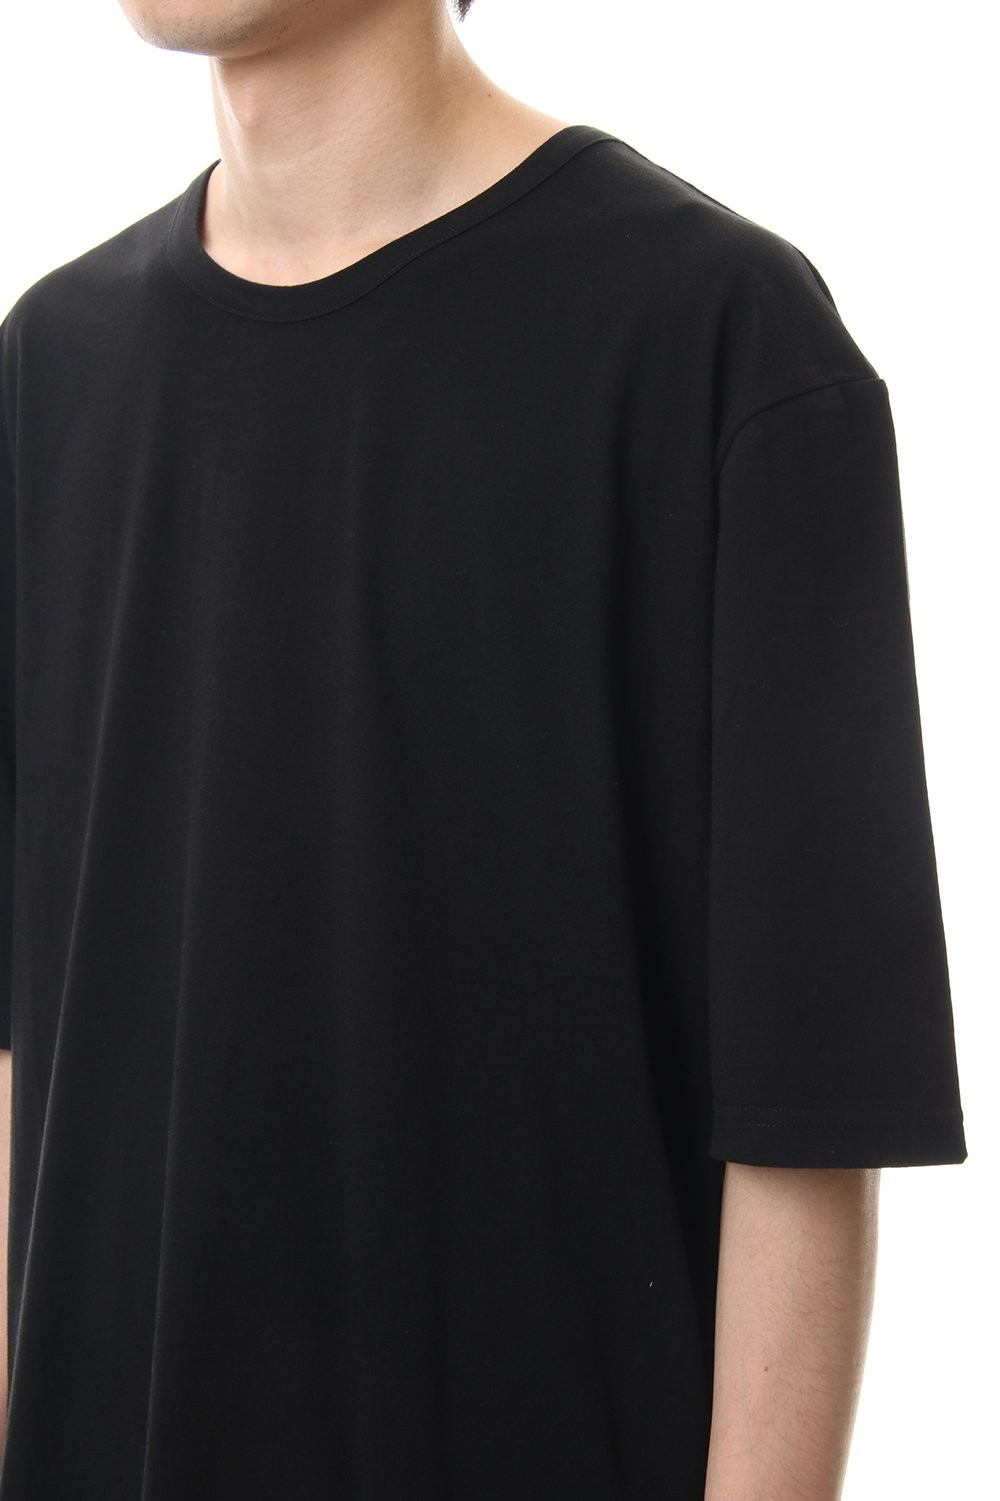 A Tied Short Sleev Cut Sew Black